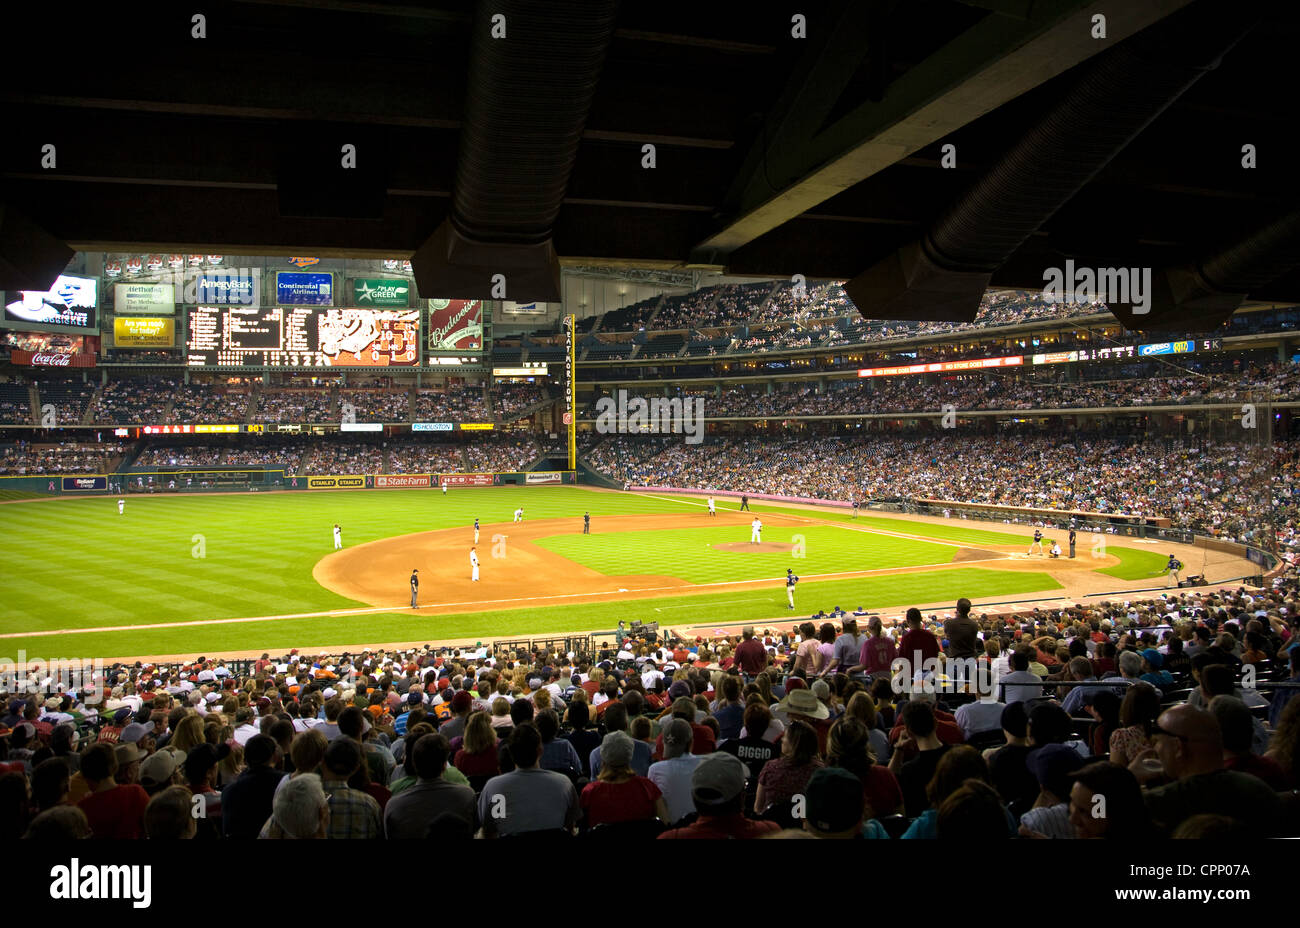 Baseball game in Minute Maid Park, Houston, Texas. Editorial use only. - Stock Image